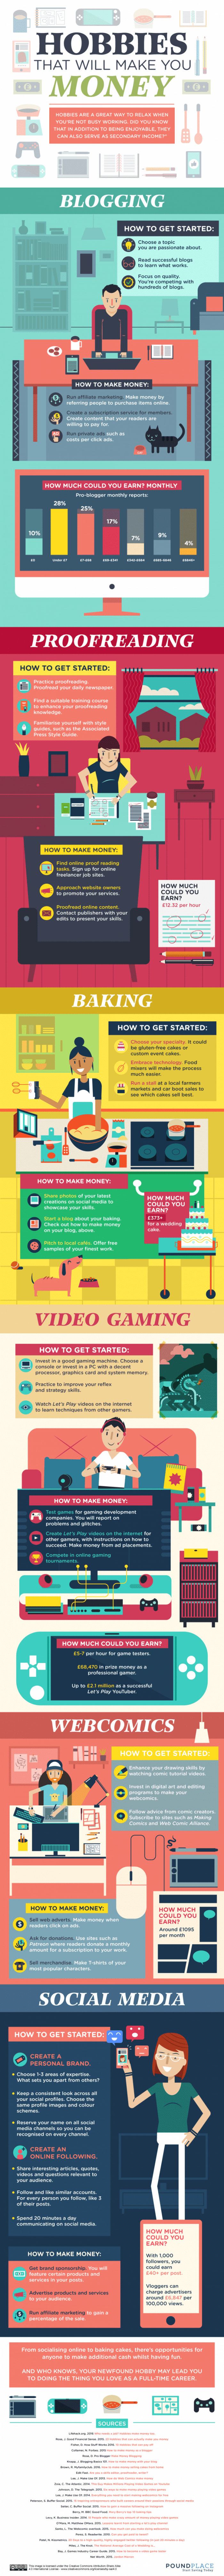 Hobbies That Will Make You Money Infographic